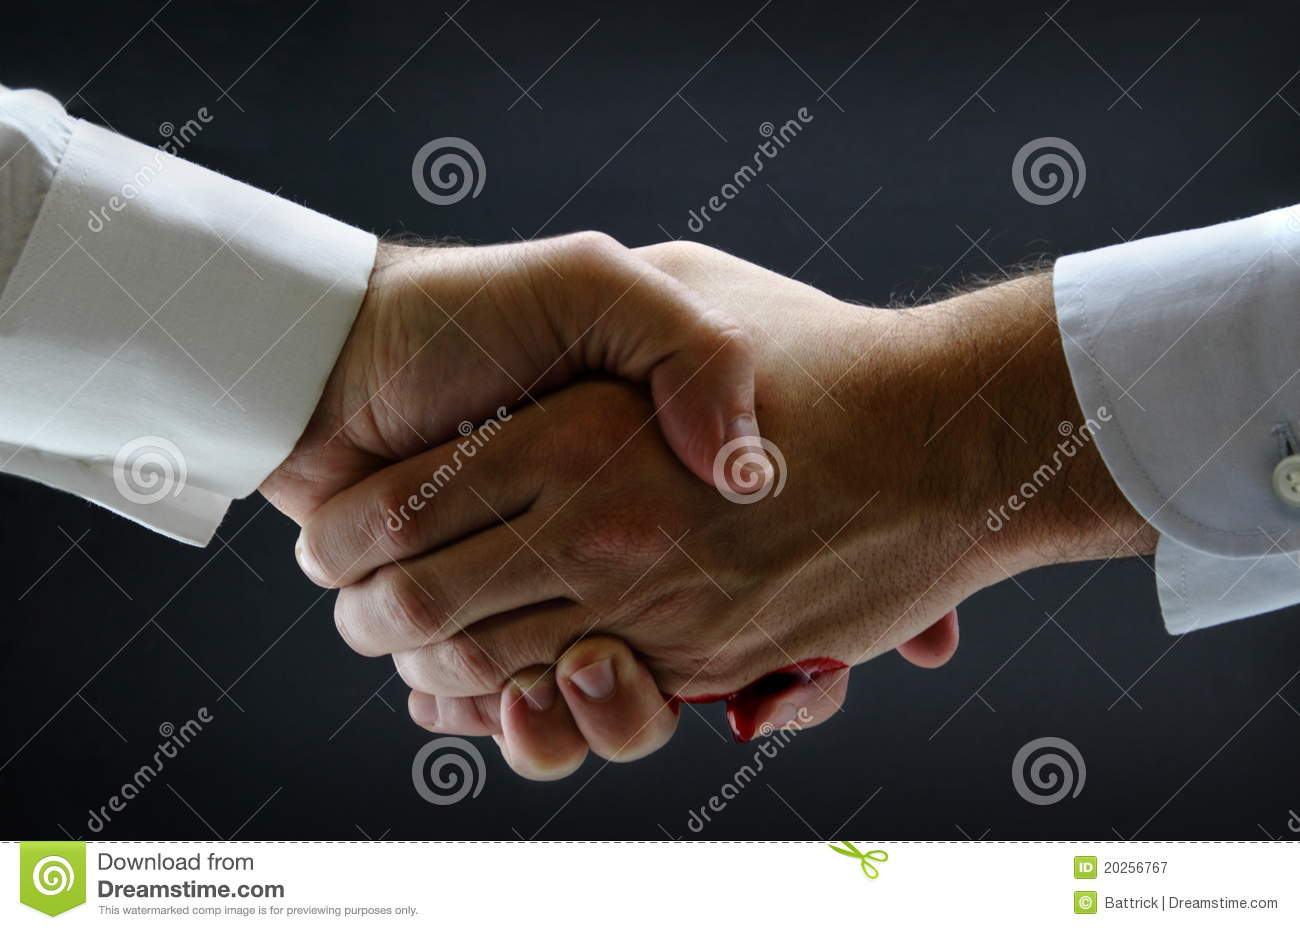 Tight business handshake stock image  Image of drip, background